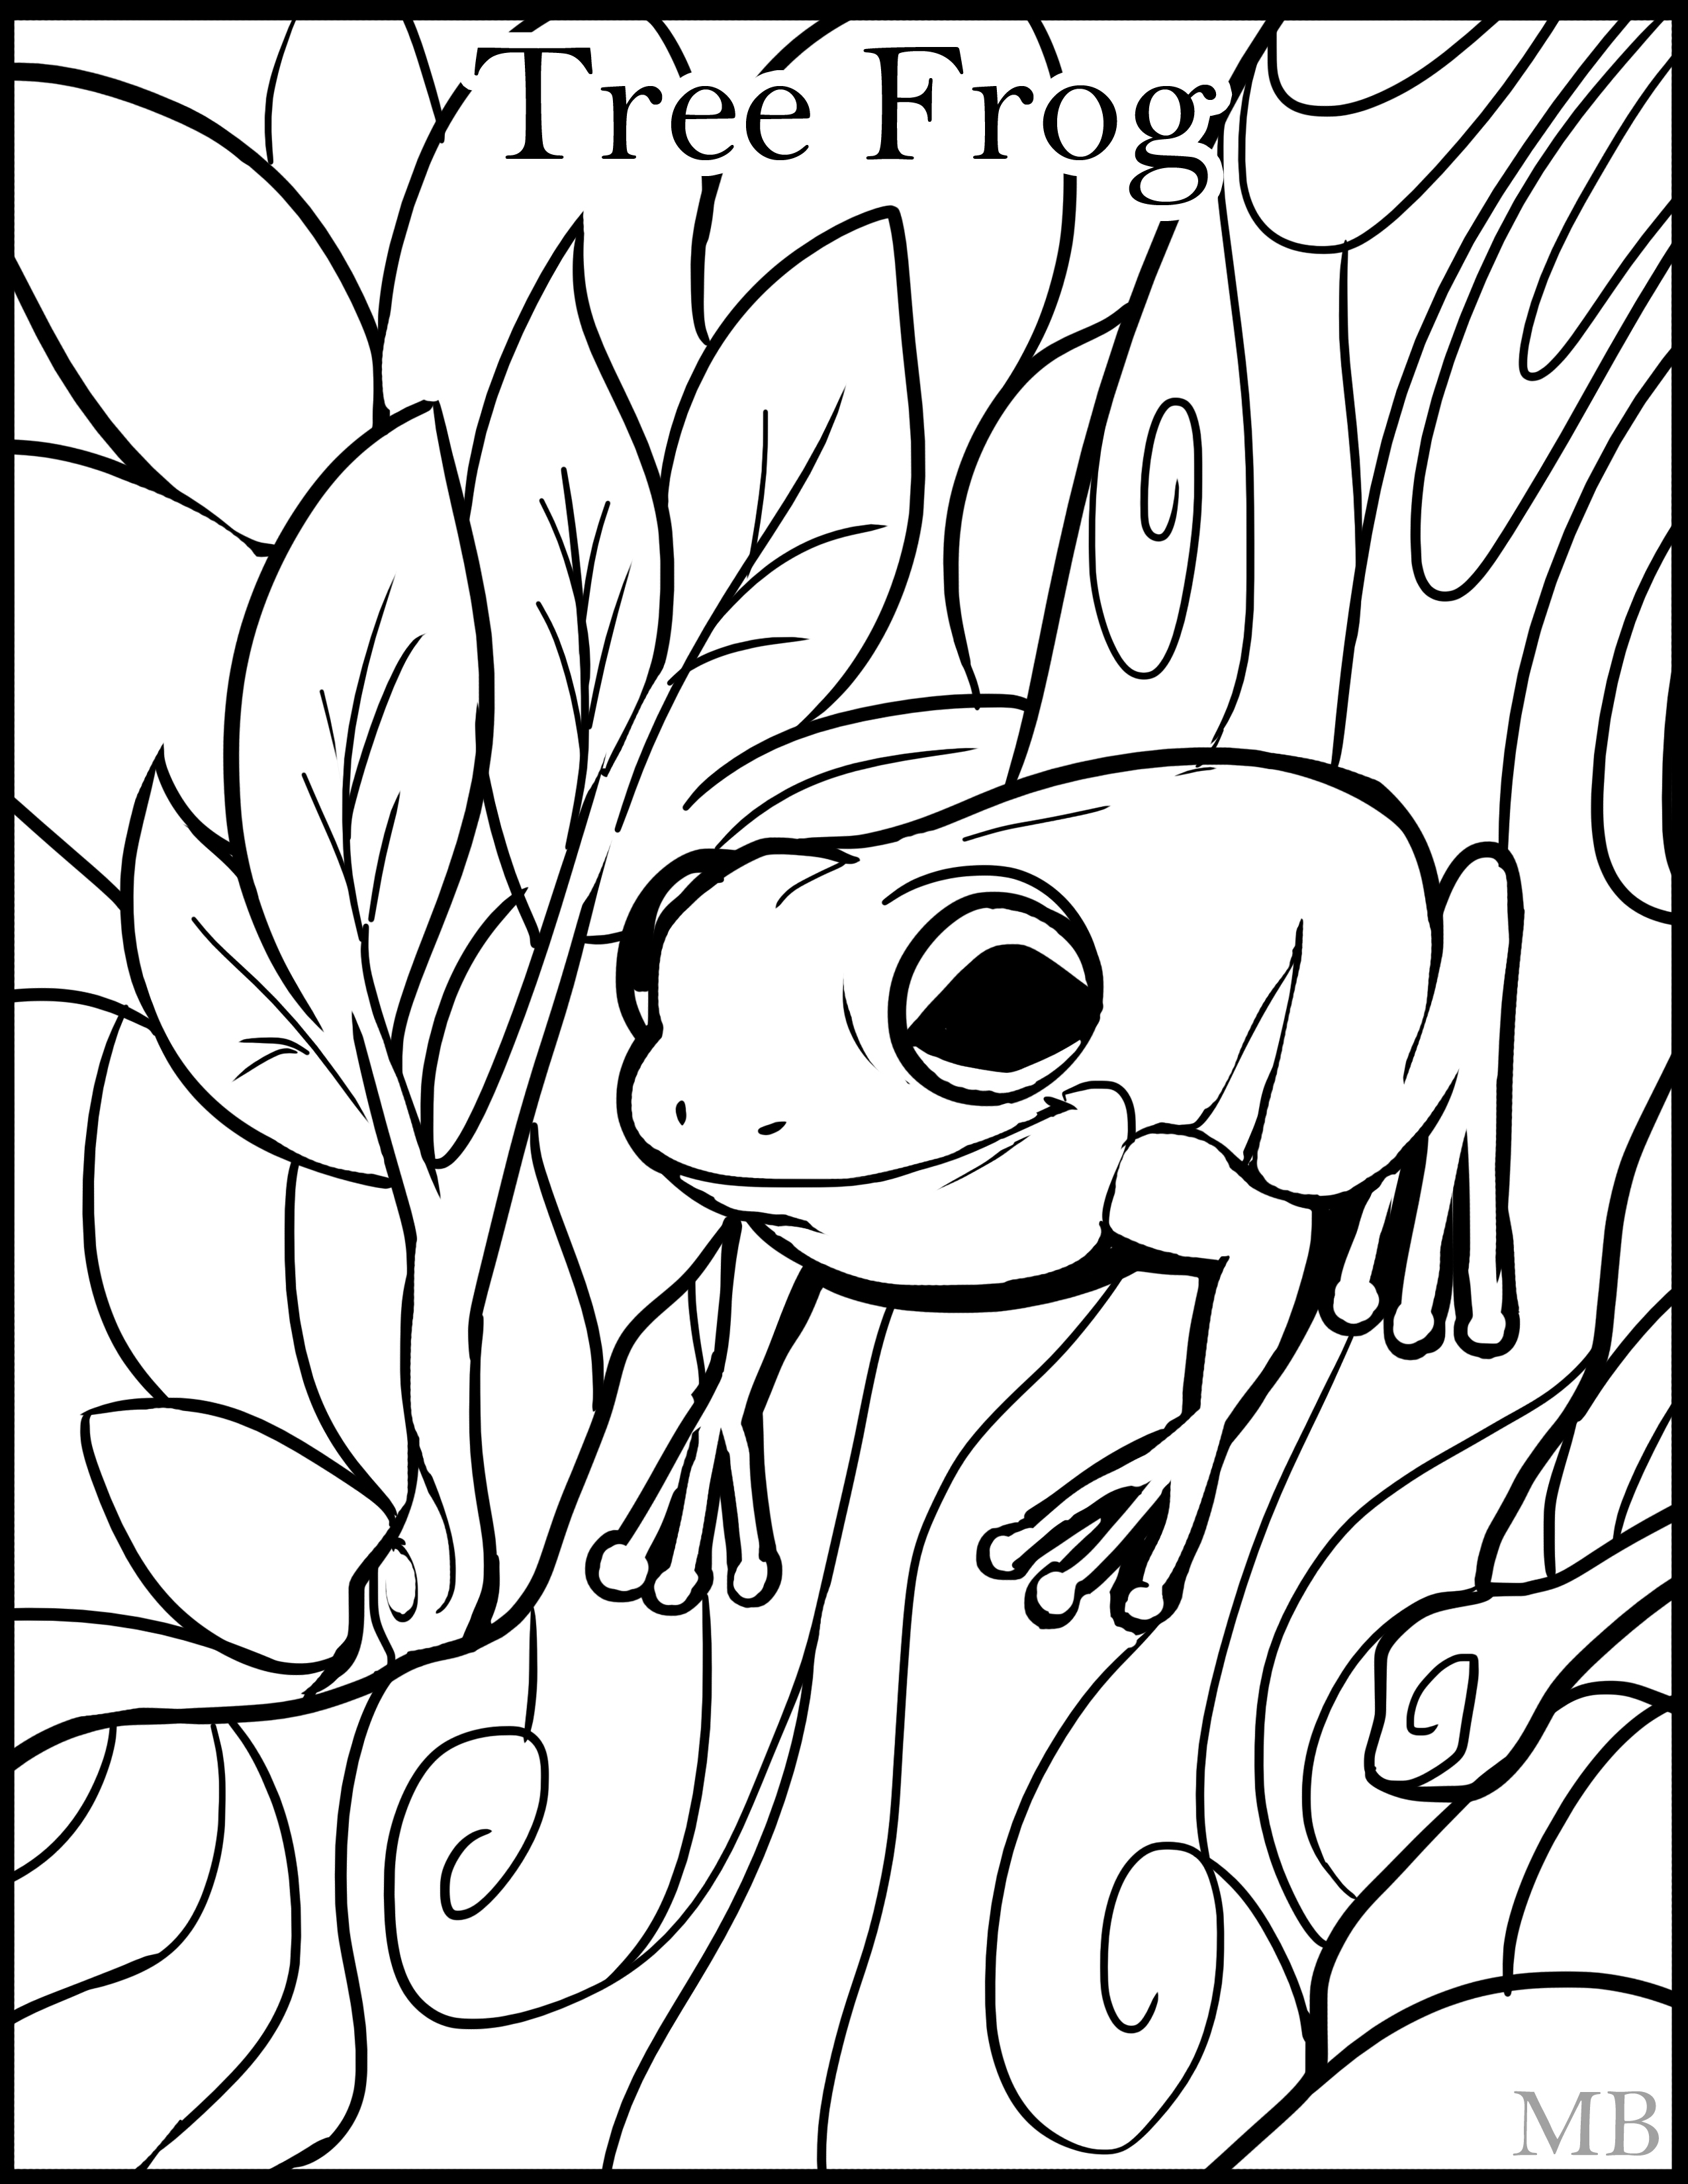 frog coloring sheets print download frog coloring pages theme for kids coloring sheets frog